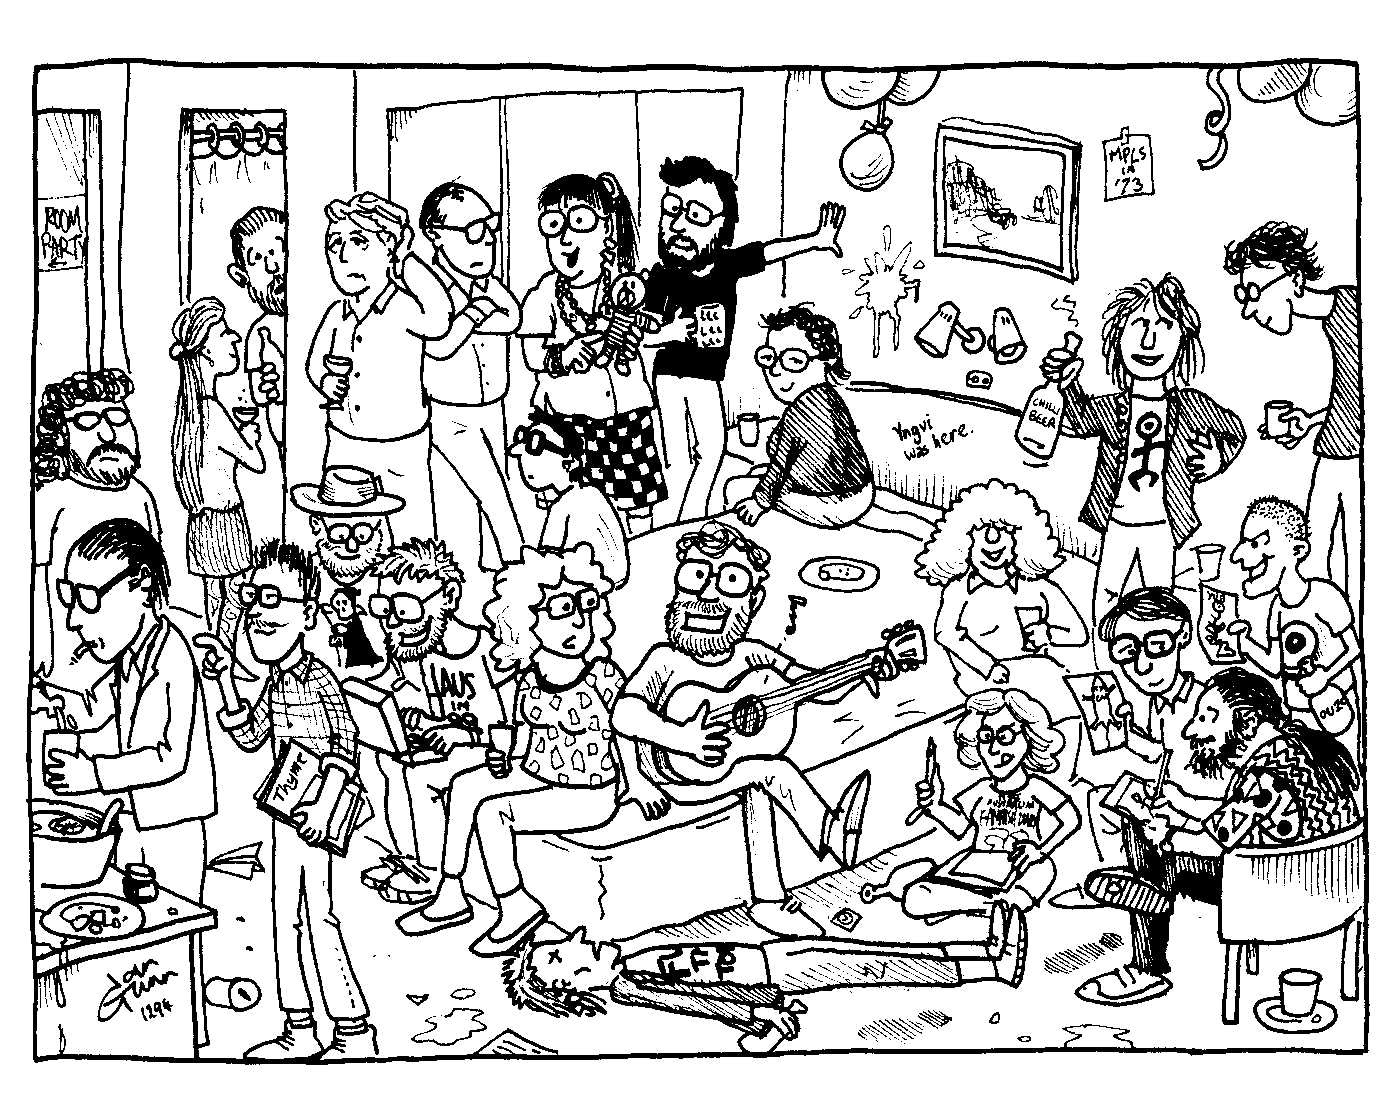 Room Party: another silly illo by Ian Gunn